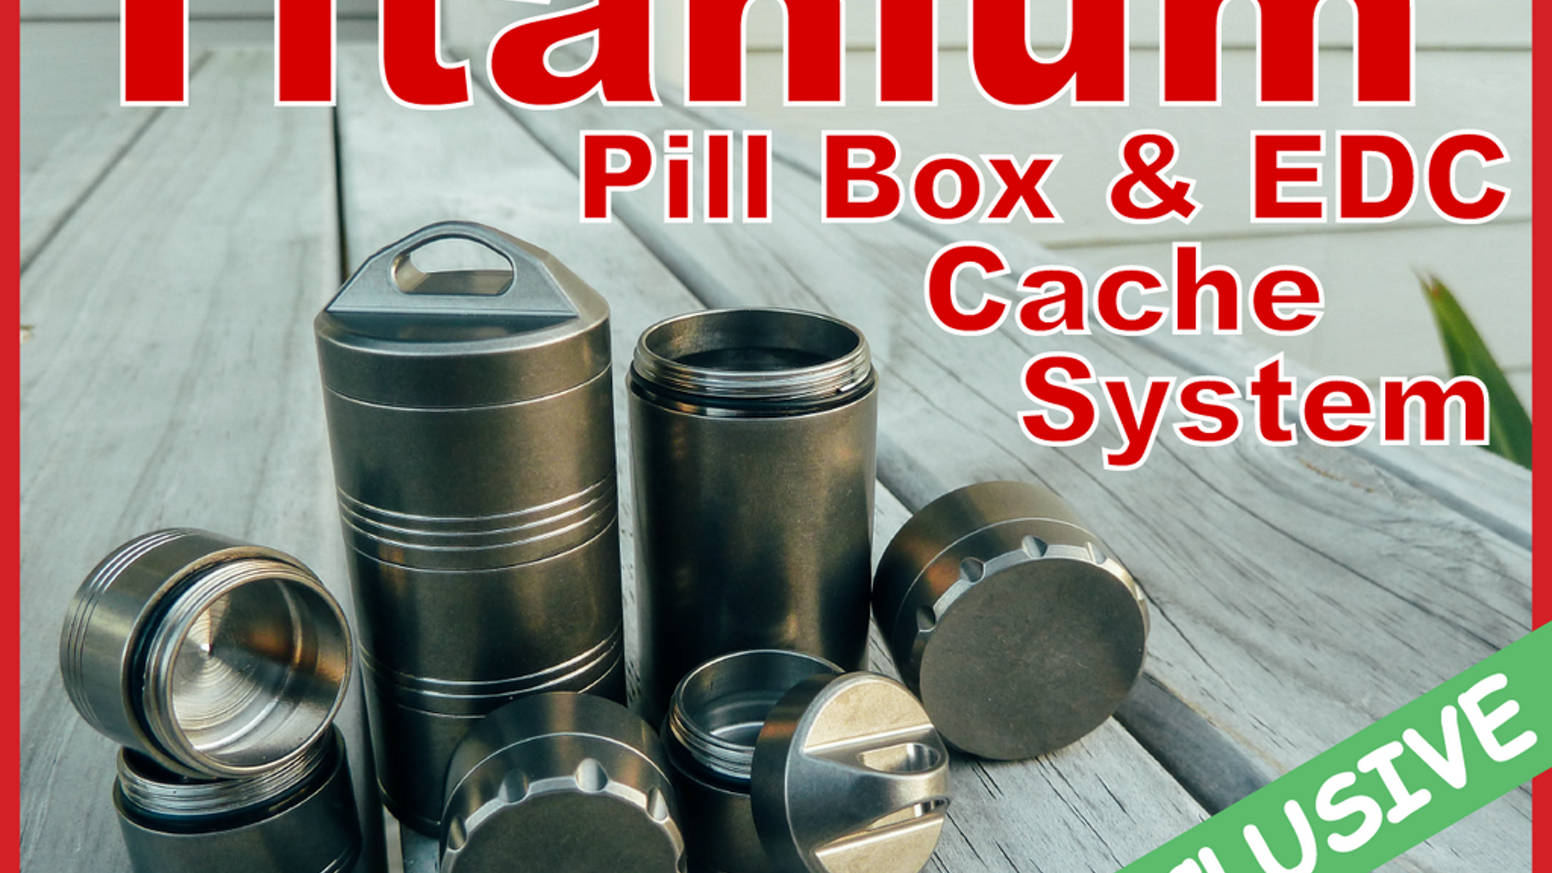 *NEW*... World's Greatest Titanium Modular Pill Box And Everyday Carry (EDC) Cache -- Your Friends Will Envy You... GUARANTEED!